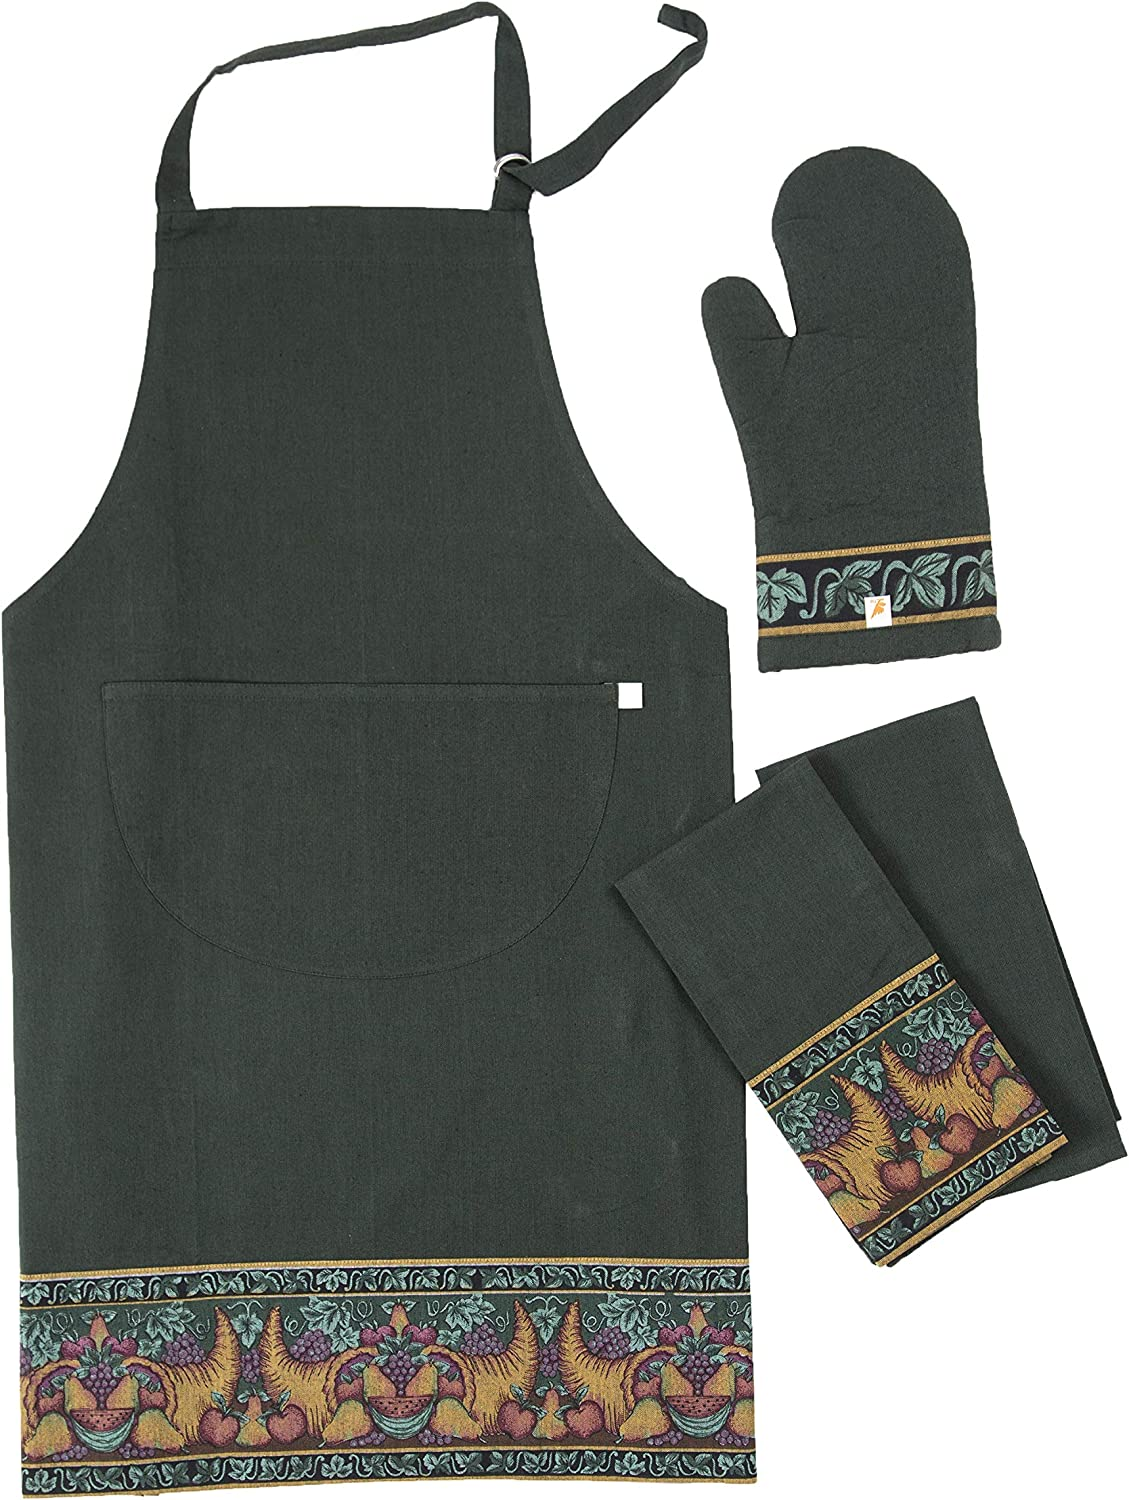 100% Cotton Holiday Kitchen Dish Towels, Oven Mitt and Apron 4 Pack Set, Yarn Dyed Chambray, Nature Green with Harvest Cornucopia Design, For Christmas and Thanks Giving by maspar everyday kitchen